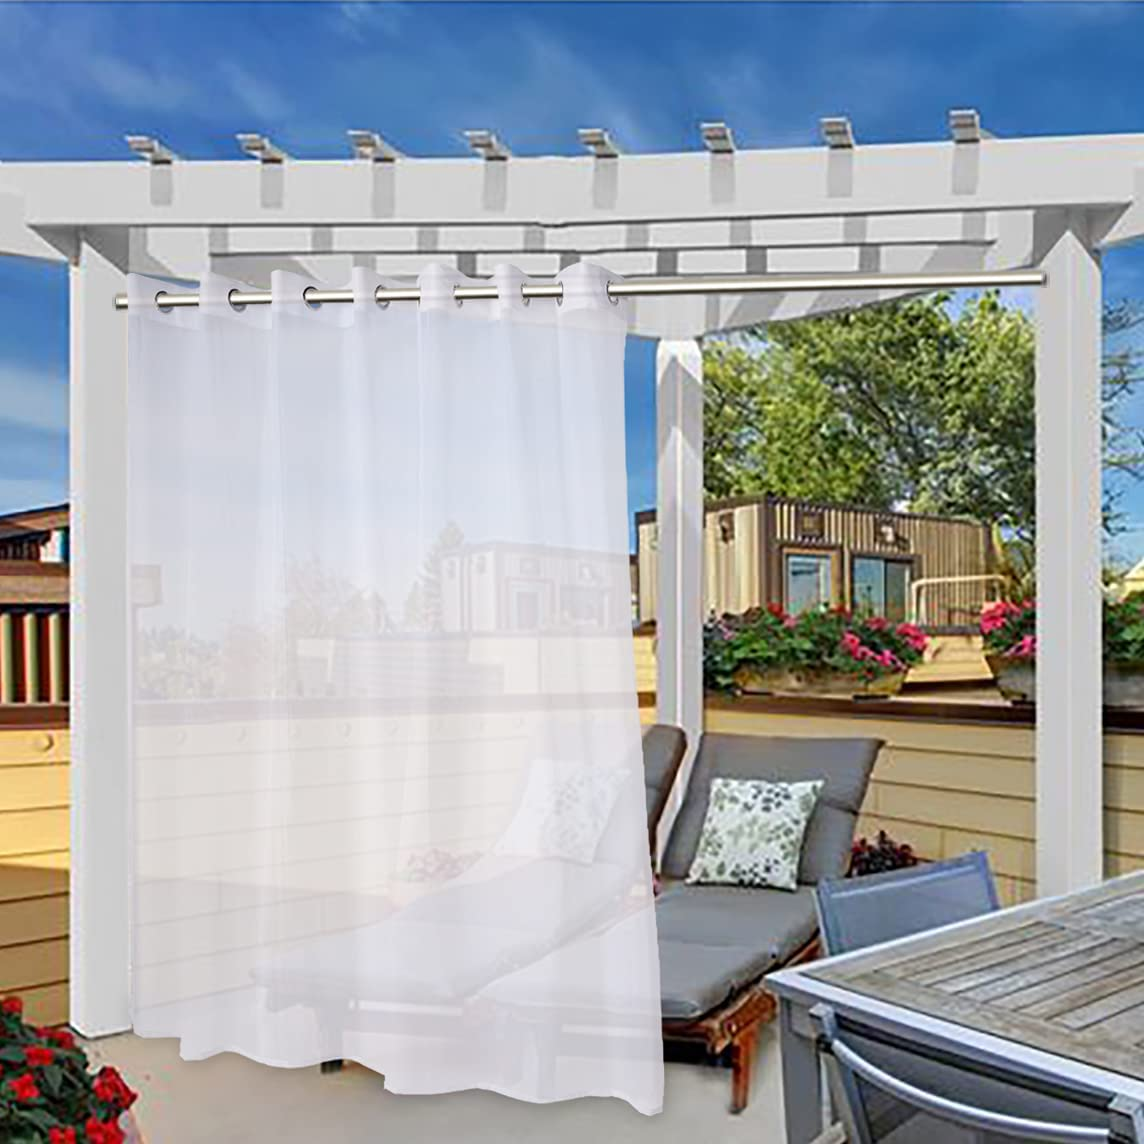 FLOWEROOM Sheer Outdoor Curtains for Patio Waterproof, White, 100 x 84 Inches Long - Indoor Extra Wide Privacy Voile Drapes, Grommet Semi-Sheer Curtains for Bedroom, Pergola, Porch and Gazebo, 1 Panel